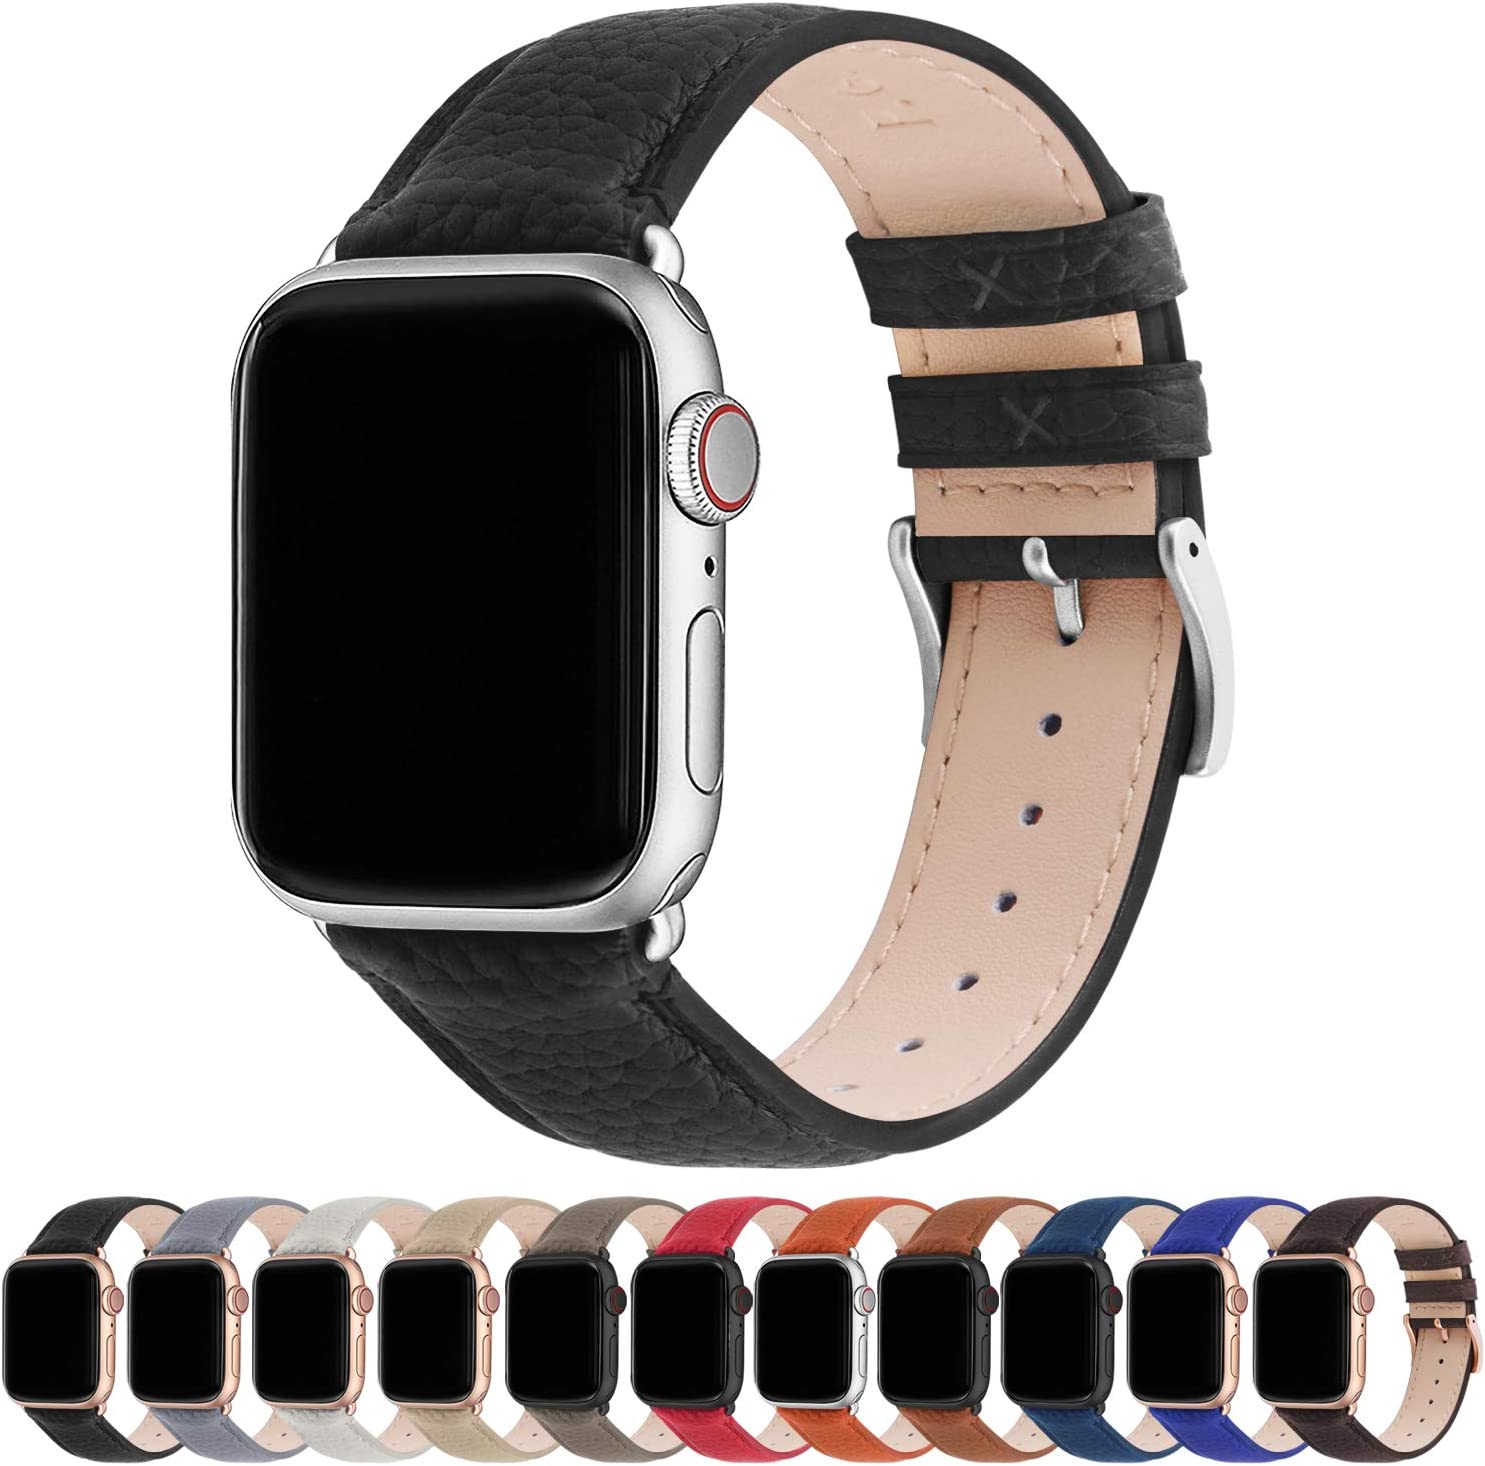 Fullmosa Compatible Apple Watch Band 44mm 42mm 40mm 38mm Leather Compatible iWatch Band/Strap Compatible Apple Watch SE & Series 6 5 4 3 2 1, 38mm 40mm, Black + Silver Buckle